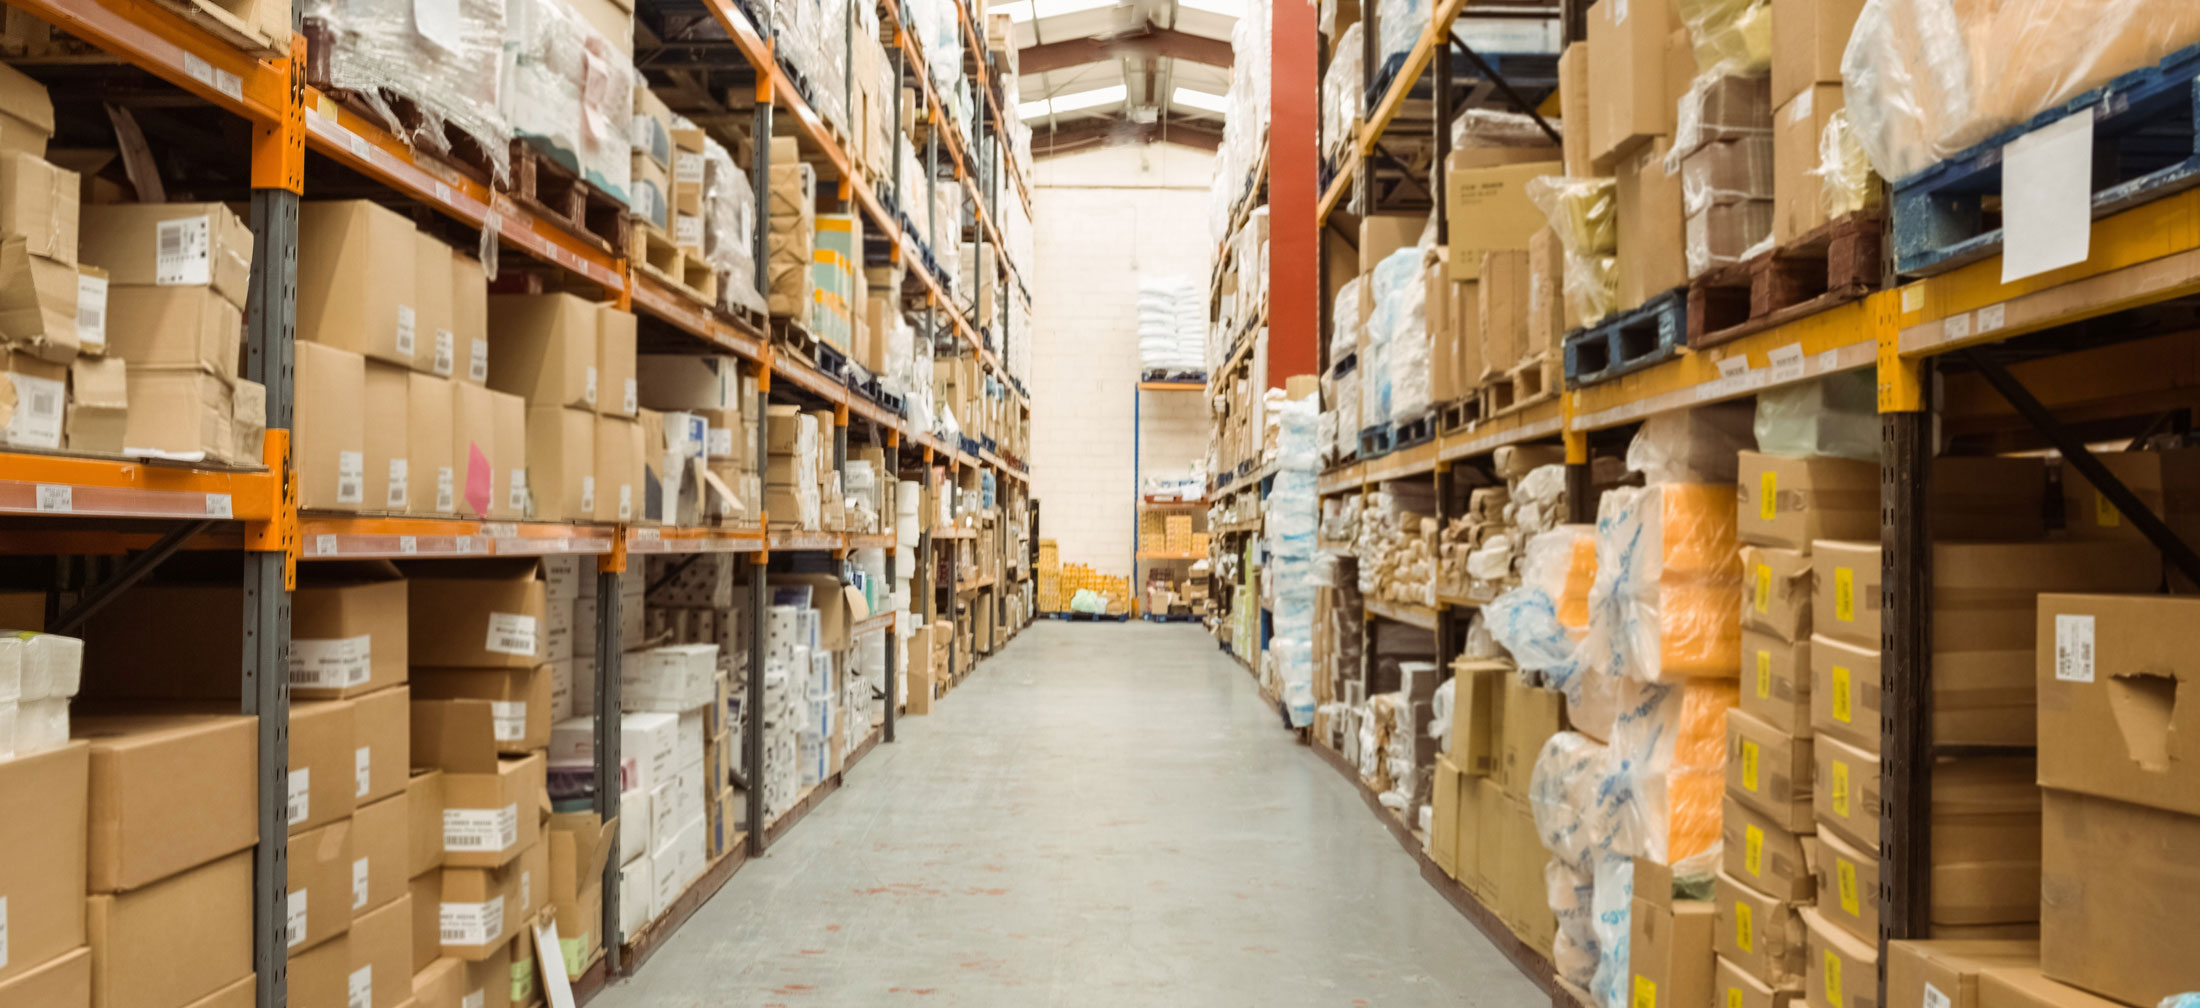 LED Lighting Distribution and Supply Center Inventory